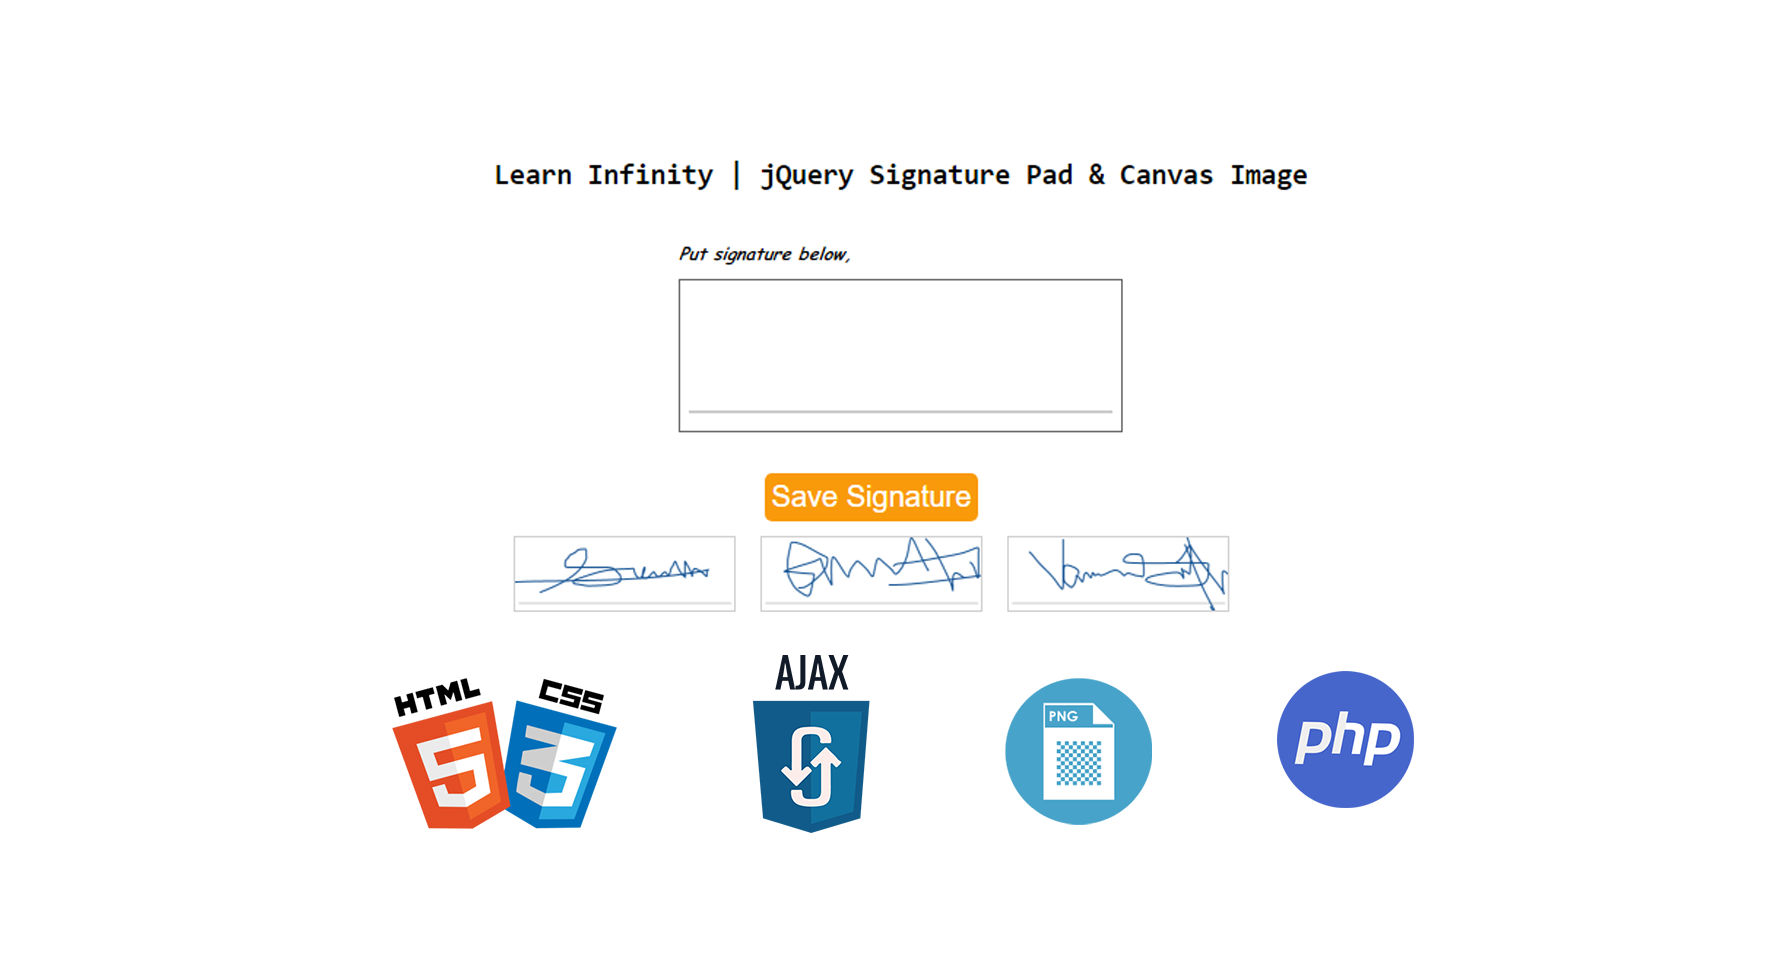 Digital E-Signature pad with saving it as image using html2canvas and Ajax, PHP